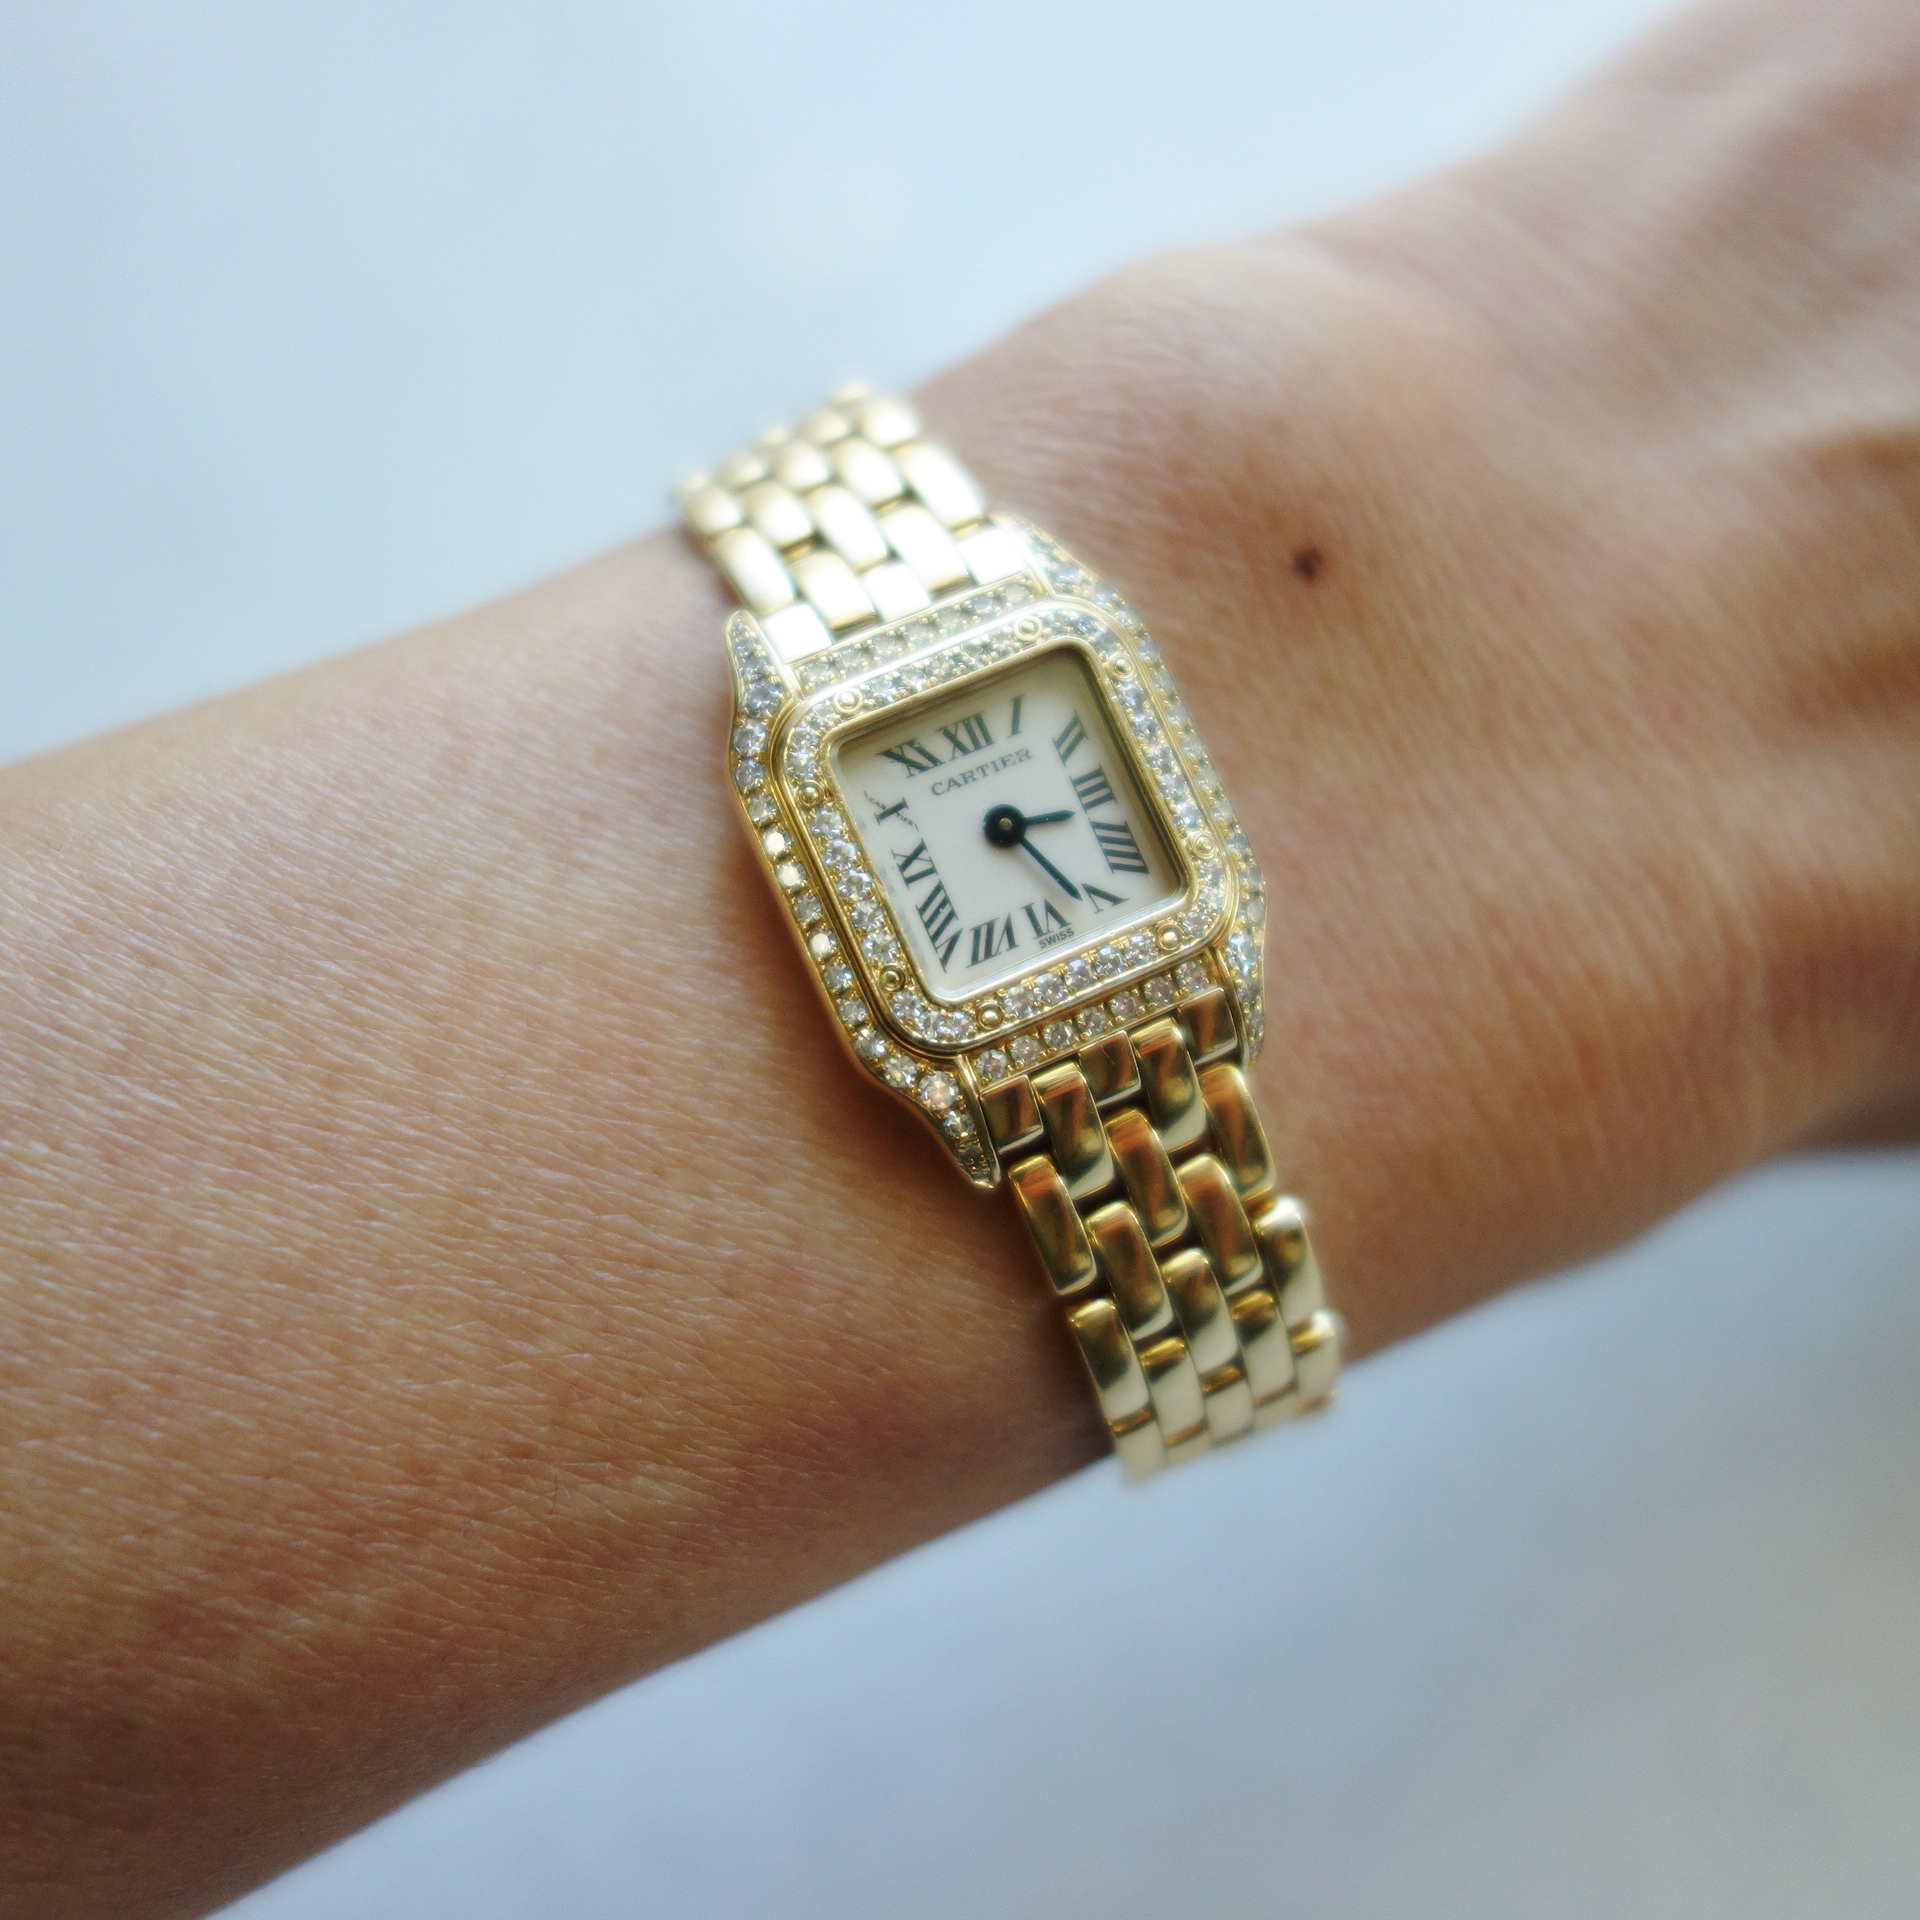 the latest f71a3 6221e 時計物語・・・Cartier ミニパンテール | おしゃれ手帖 〜好きな ...